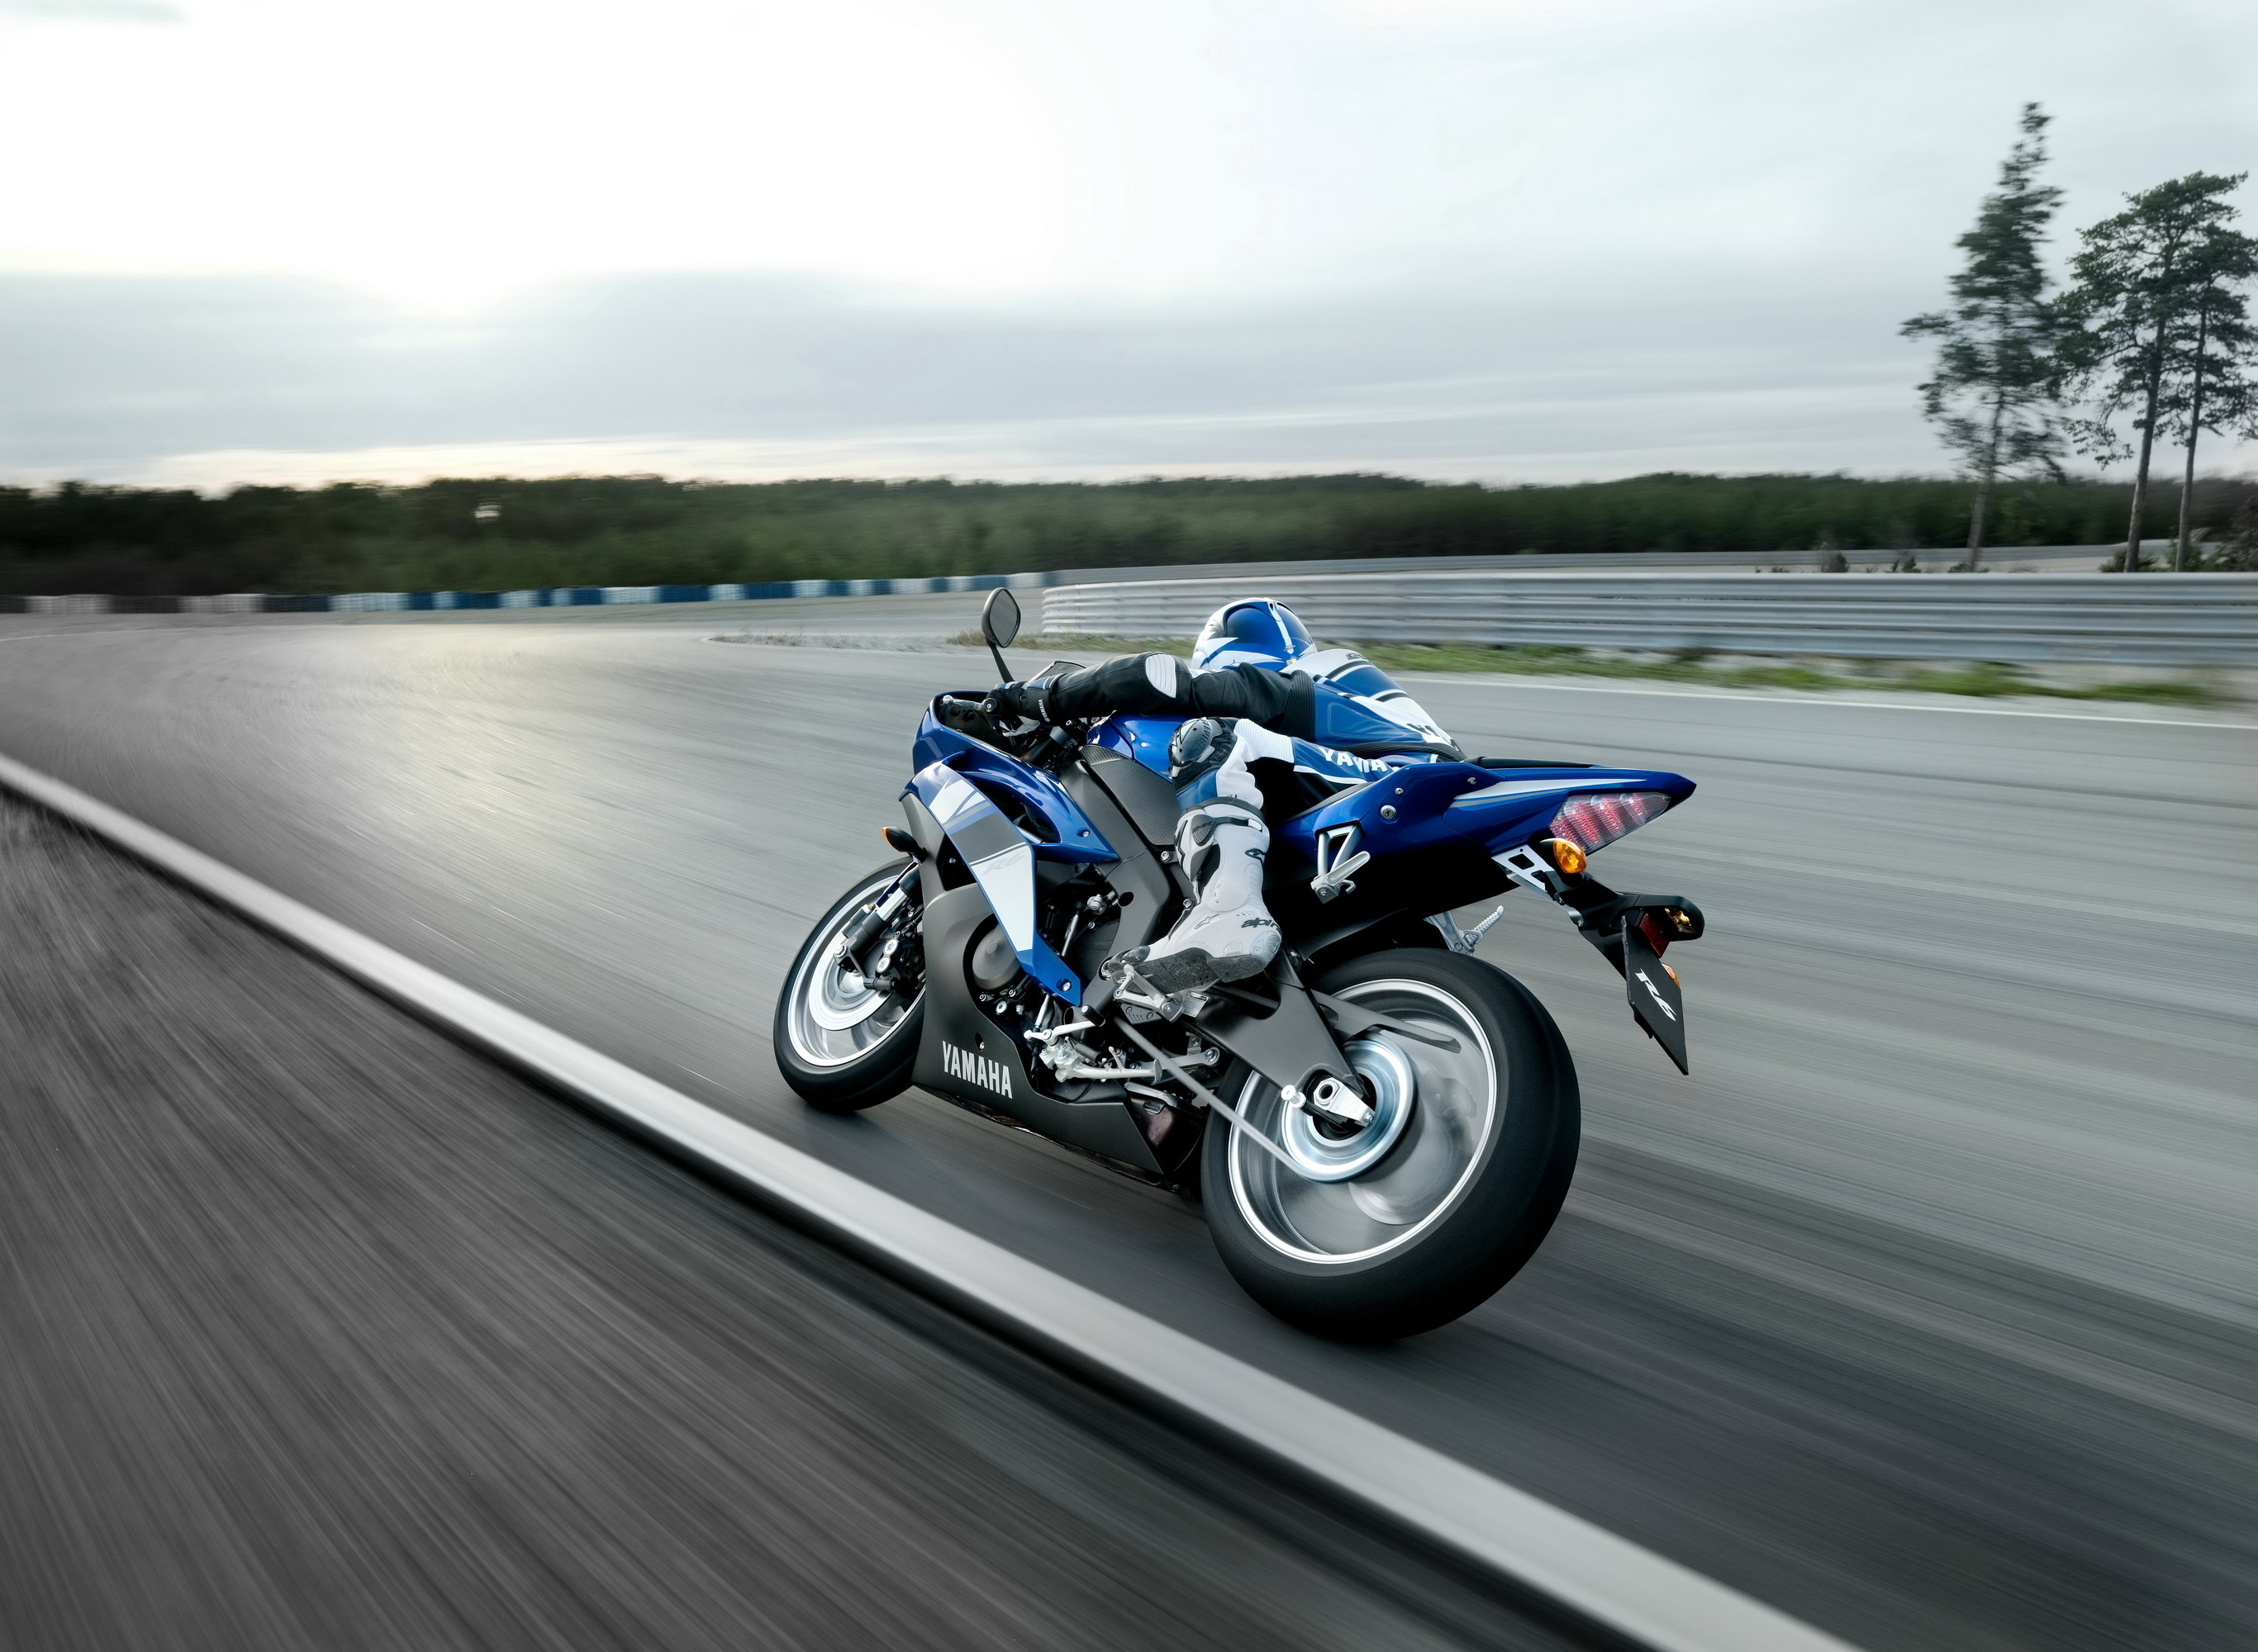 42 Motorcycle Racing HD Wallpapers | Backgrounds - Wallpaper Abyss